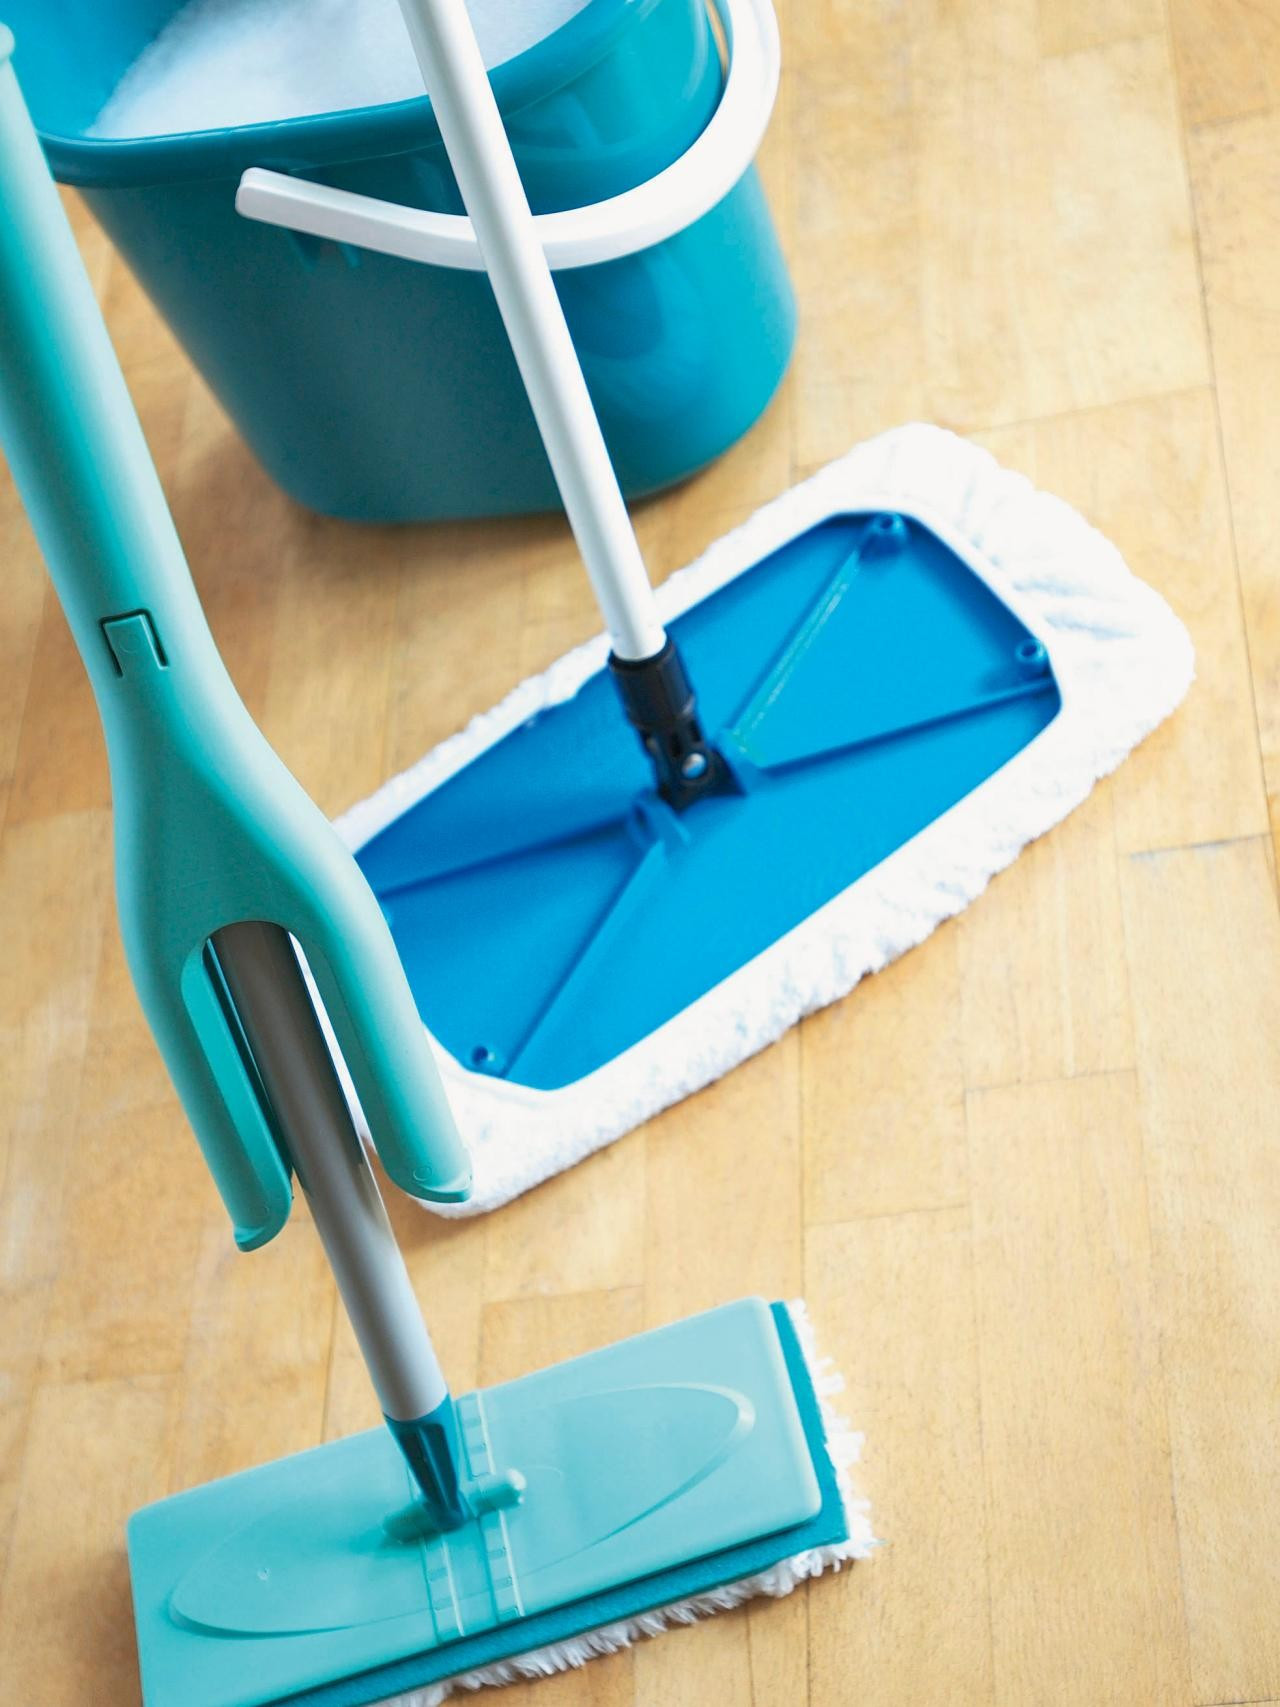 vacuum cleaners for hardwood floors walmart of 19 awesome steam clean hardwood floors images dizpos com pertaining to hardwood floor cleaning wood floor cleaner cheap hardwood flooring